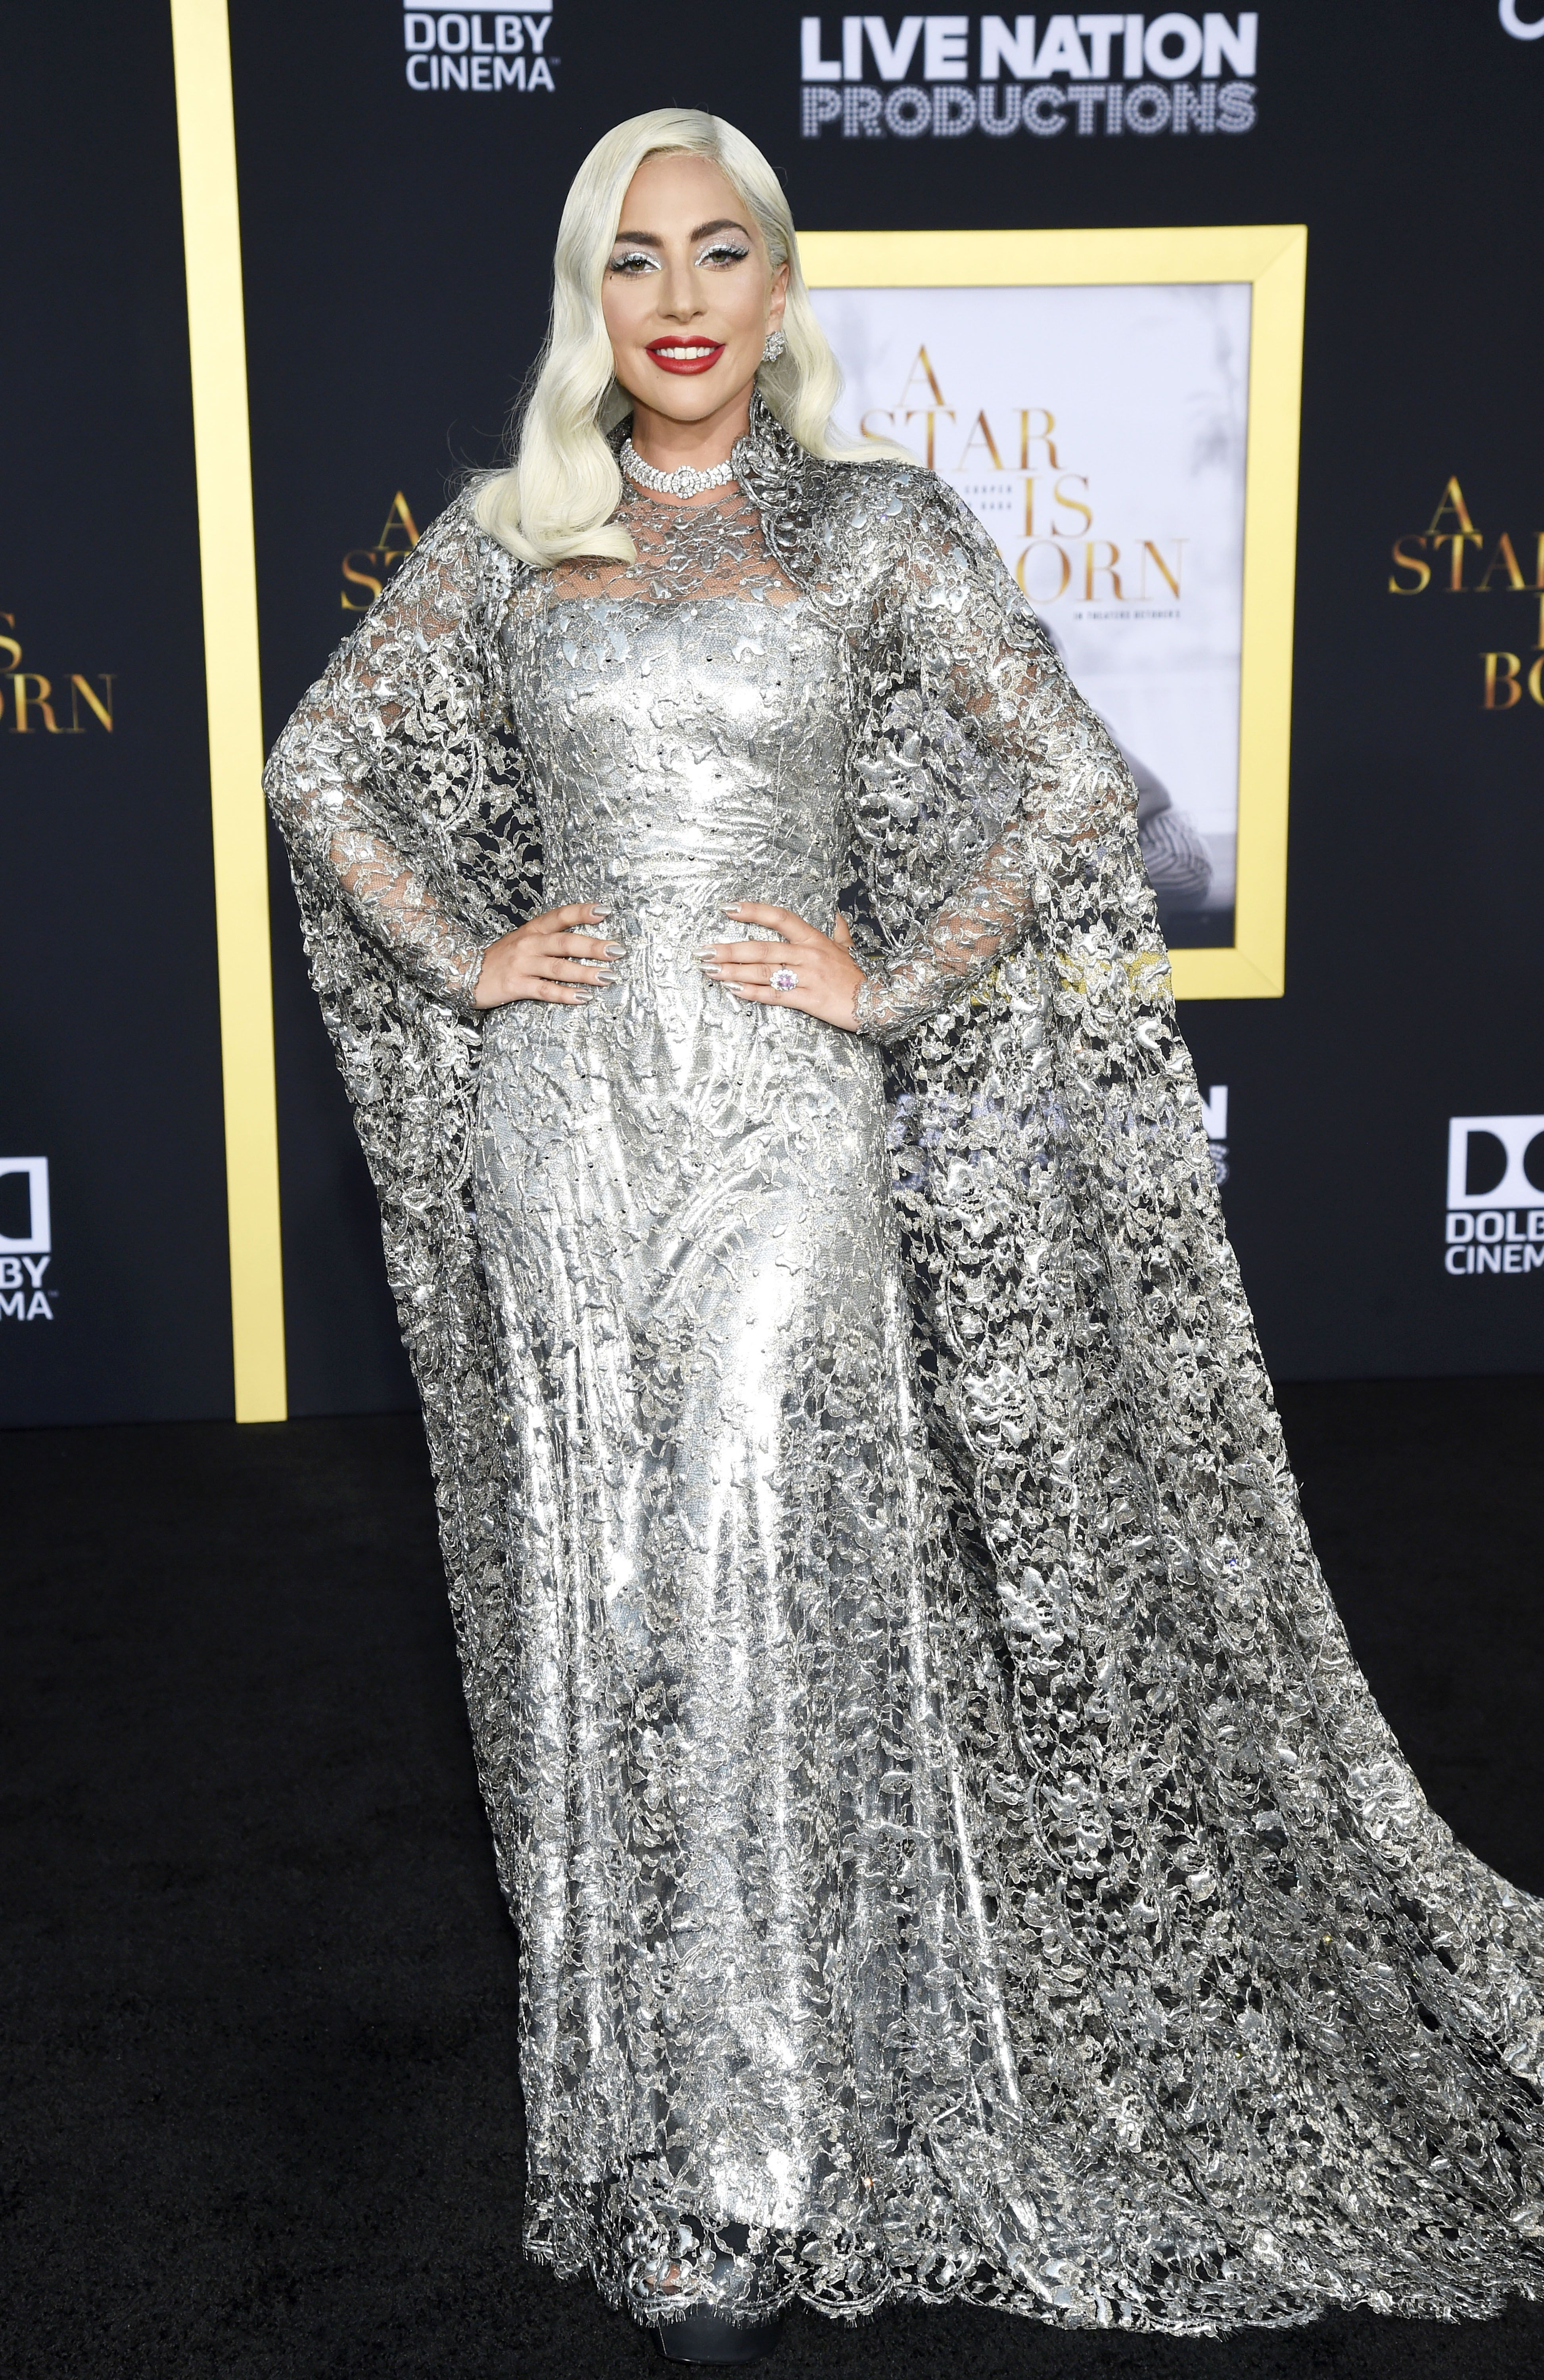 Lady Gaga Wore Silver Lace Givenchy Gown to Her \'A Star is Born\' Los ...